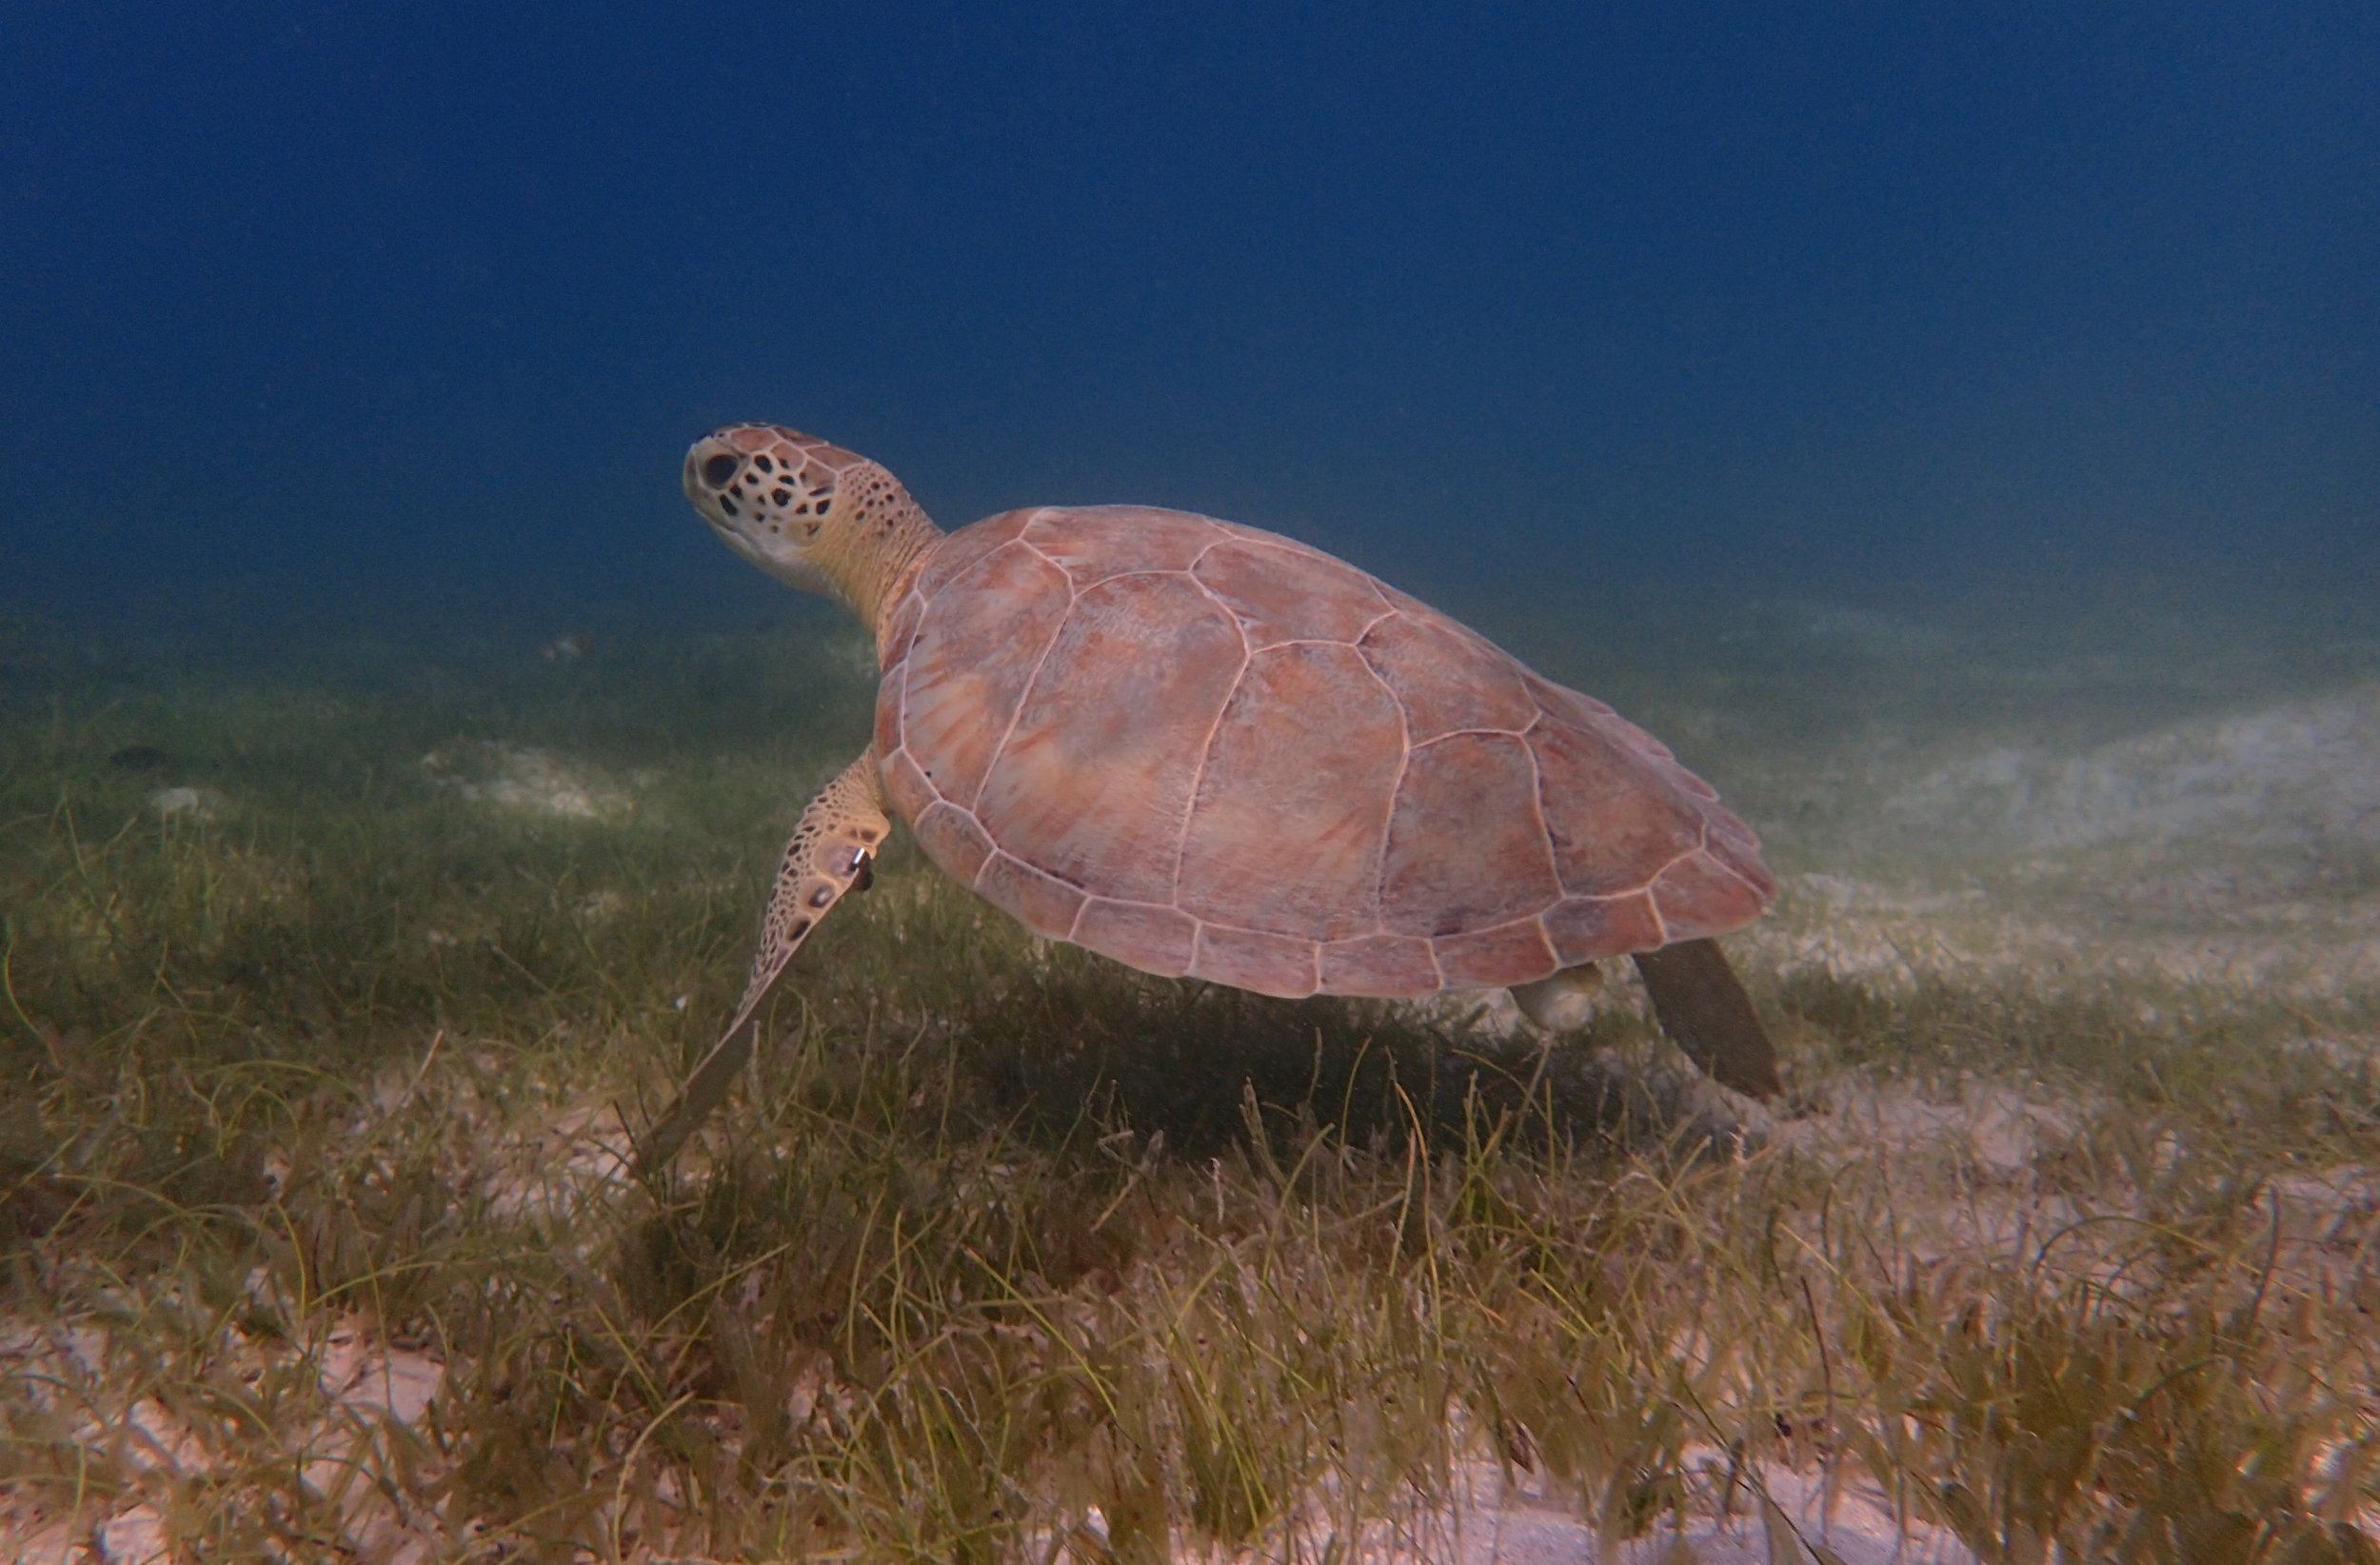 Native seagrasses play a primary role in the diet of sea turtles and provide important habitat for juvenile fishes.This juvenile green sea turtle lingers over a mixed seagrass bed with both native and invasive species